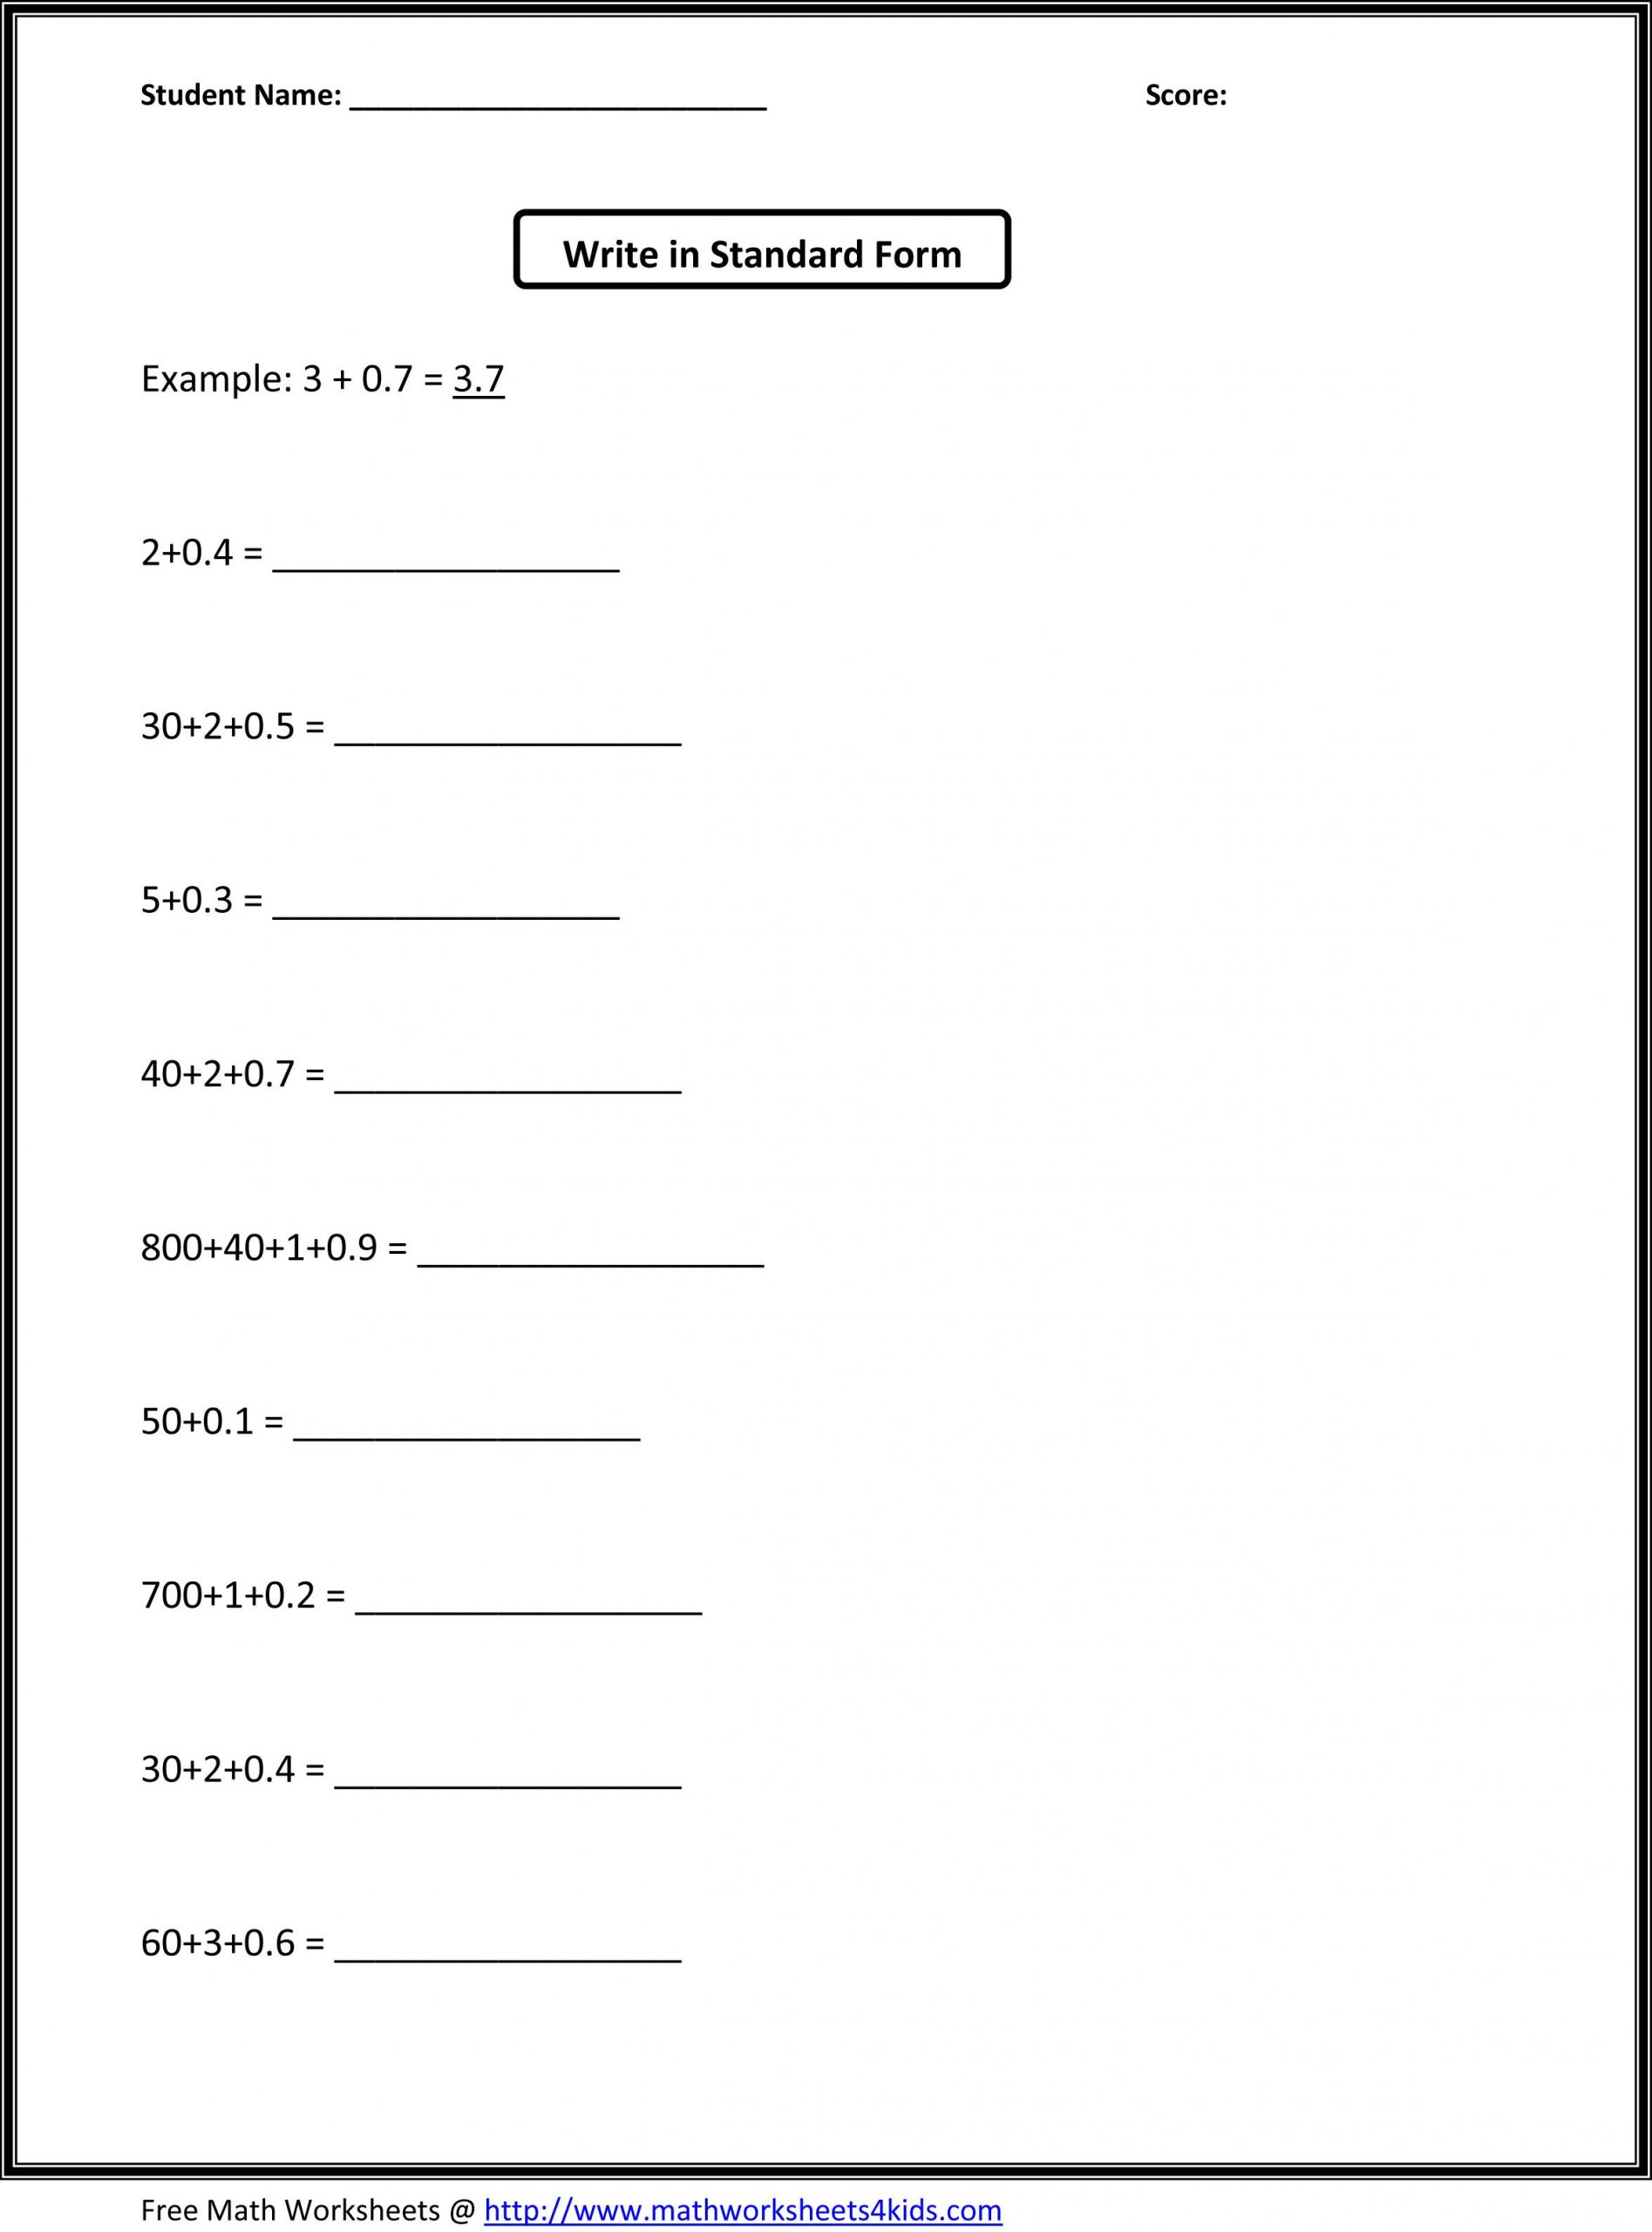 Expanded Notation Worksheets 3rd Grade 3rd Grade Math Worksheets 3rd Grade Math Worksheets